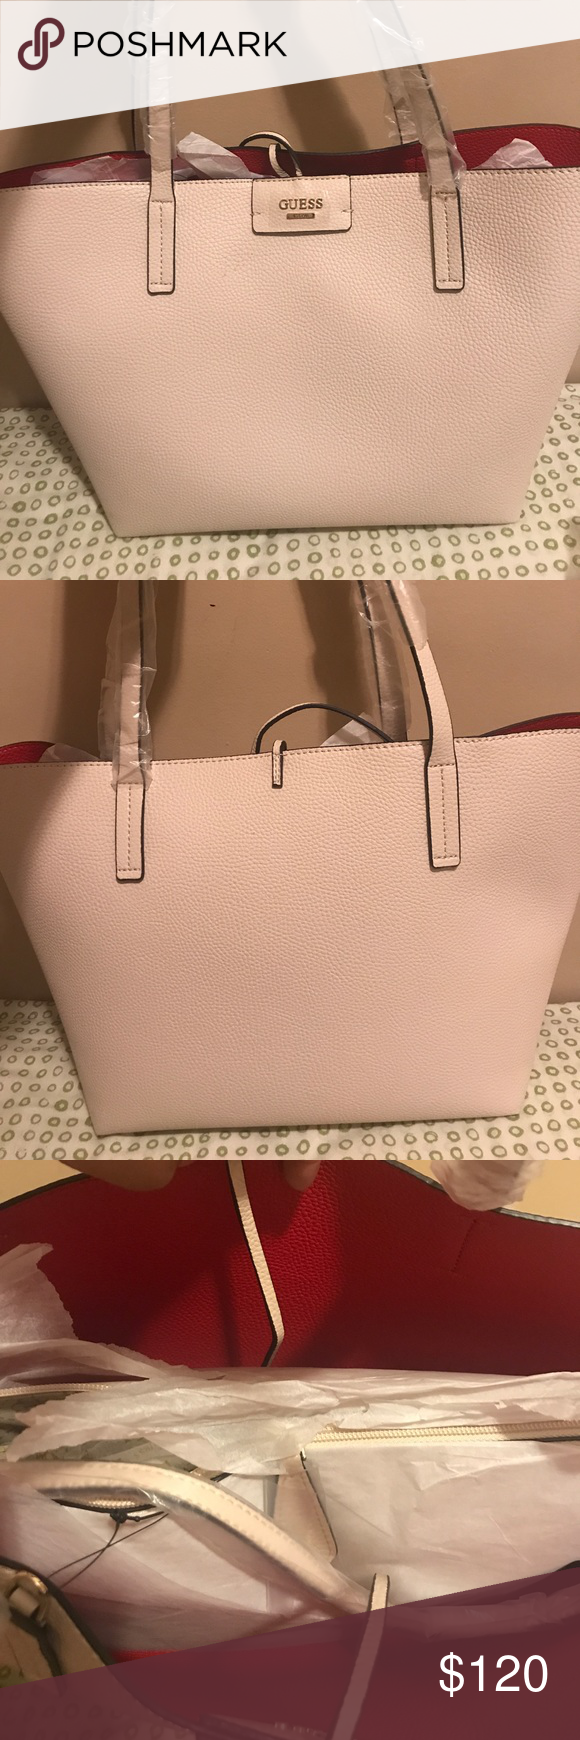 a6d3f8371f19 Guess Reversible Bobby Tote Tan multi colored tote